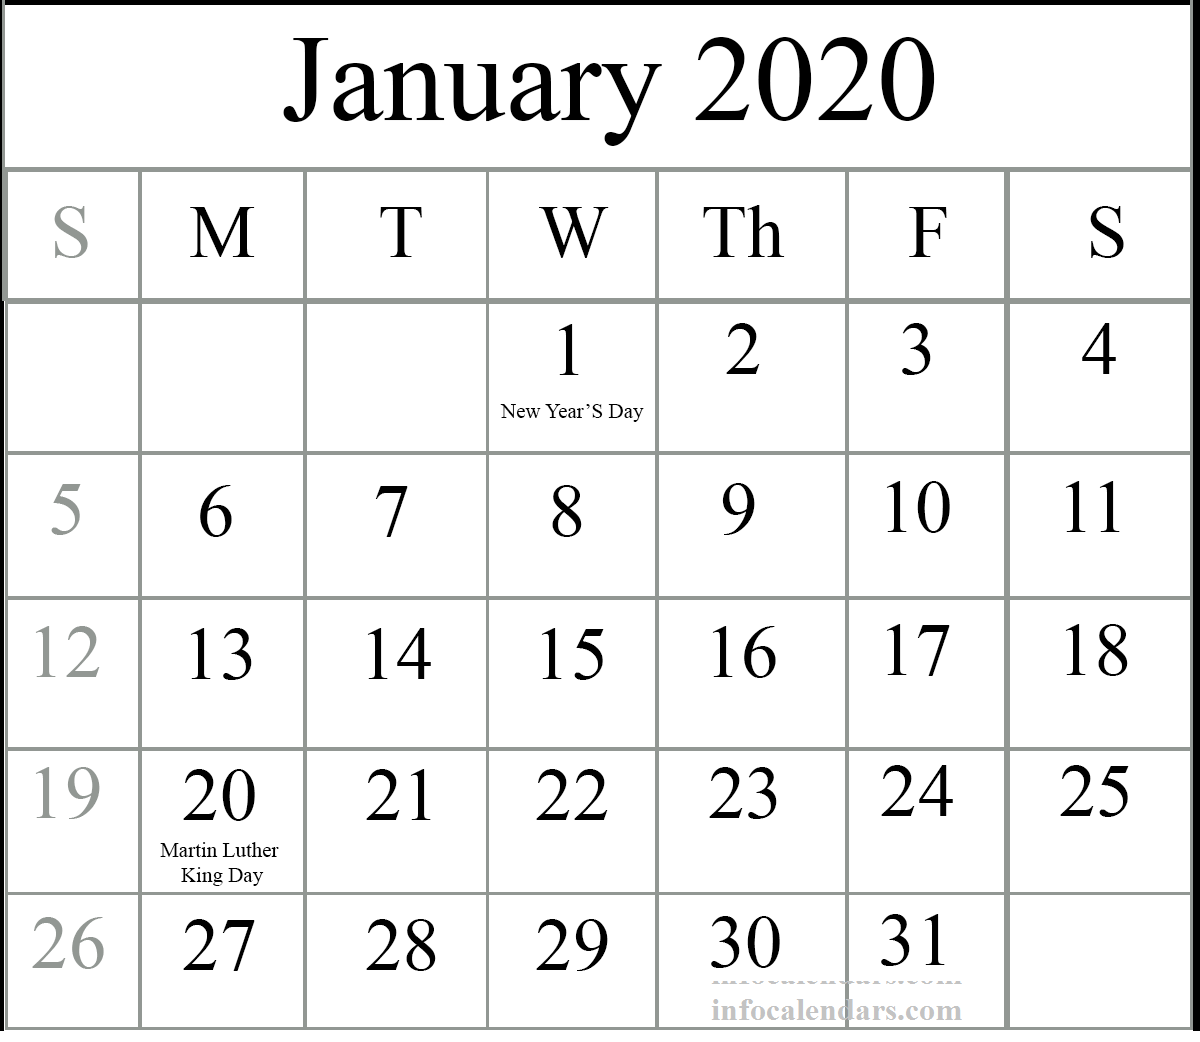 January 2020 Calendar With Holidays For School